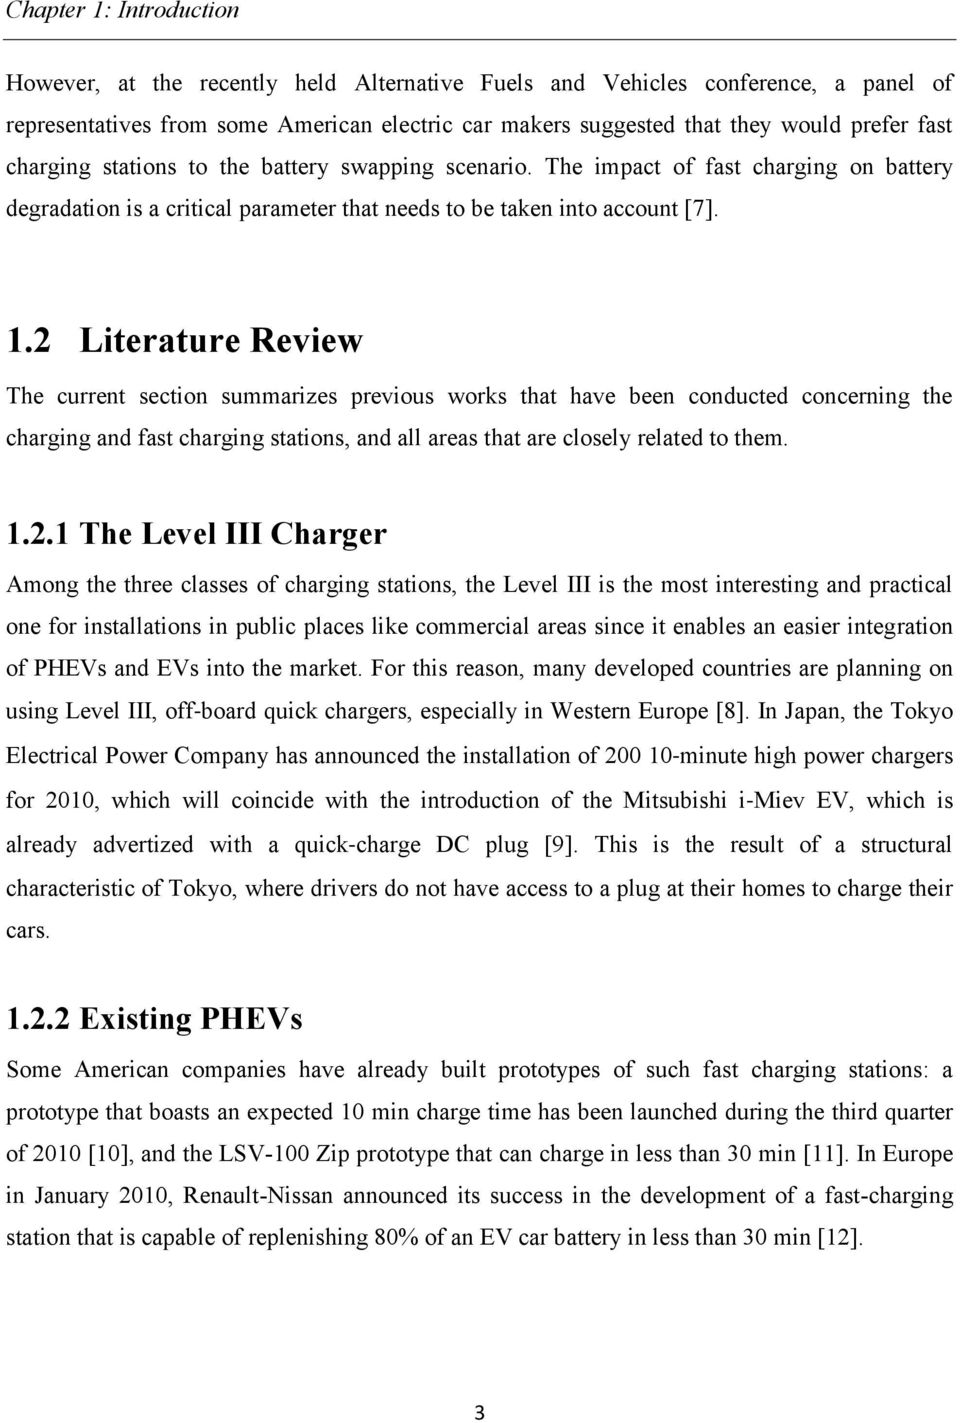 Design And Simulation Of A Fast Charging Station For Plug In Hybrid Solar Cell Powered Supercapacitor Charger With Strange Output Voltage 2 Literature Review The Current Section Summarizes Previous Works That Have Been Conducted Concerning